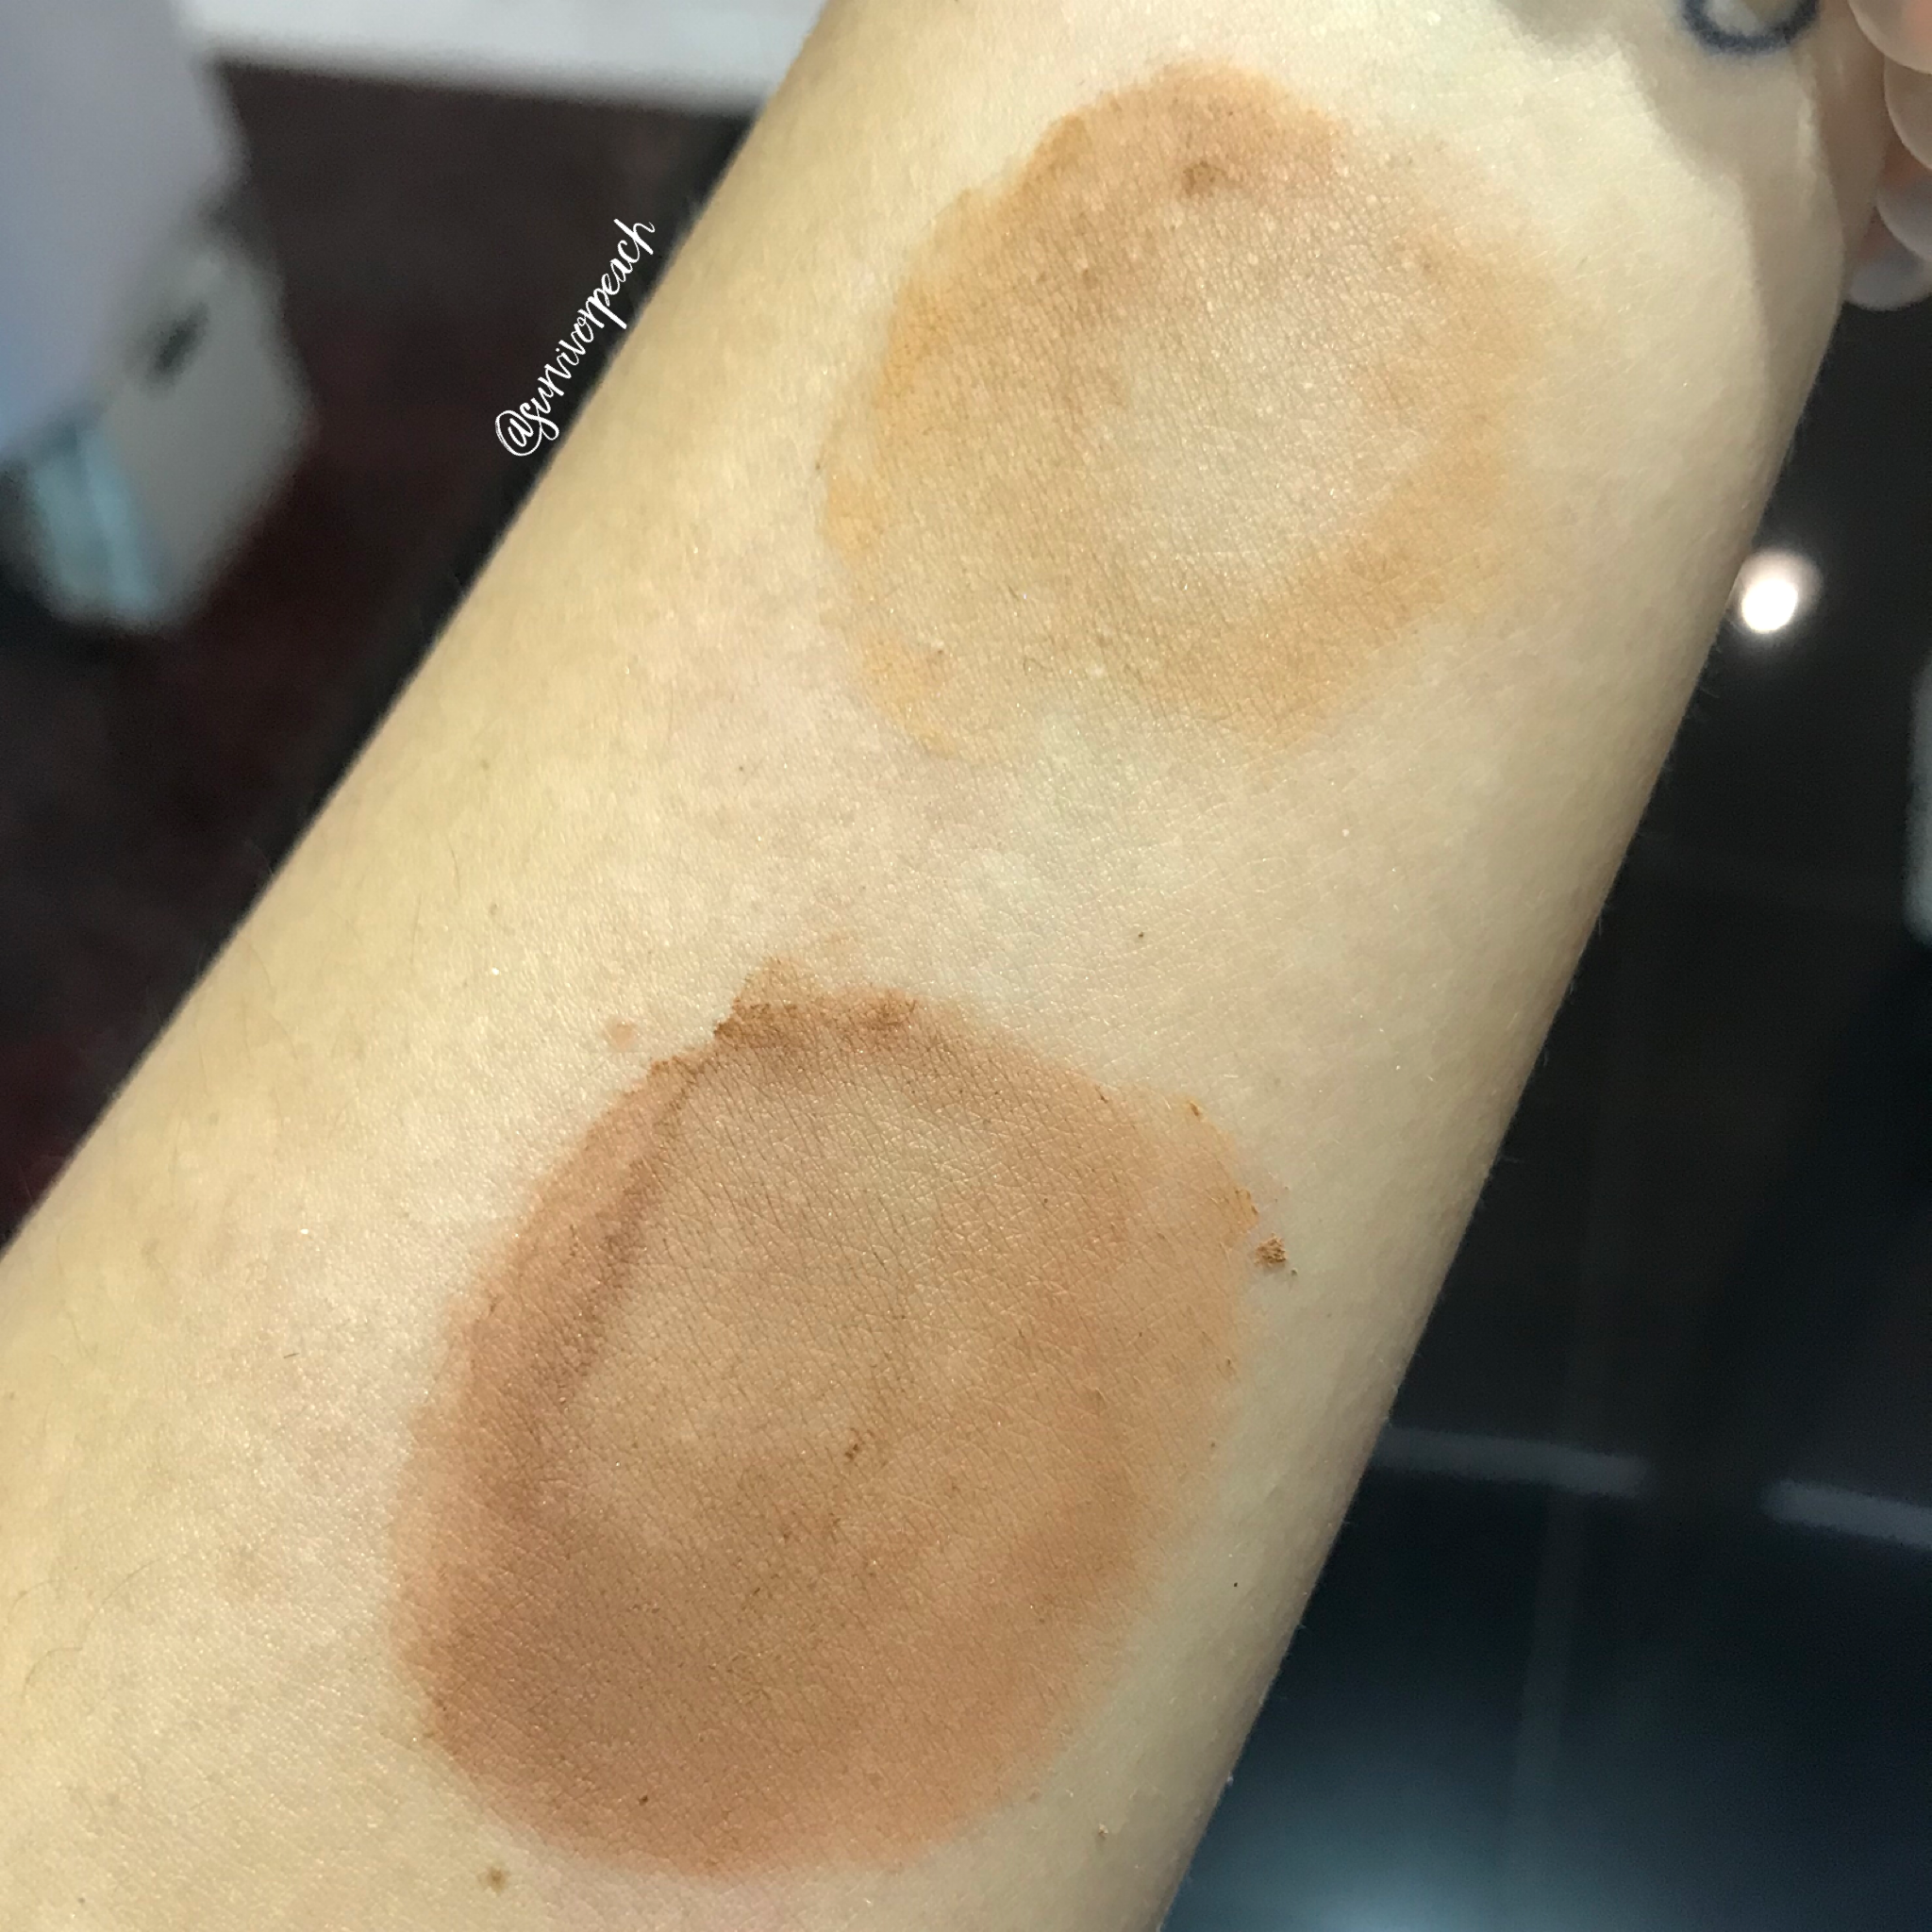 Huda Beauty Easy Bake Powder swatches - Cinnamon Bun and Coffee Cake